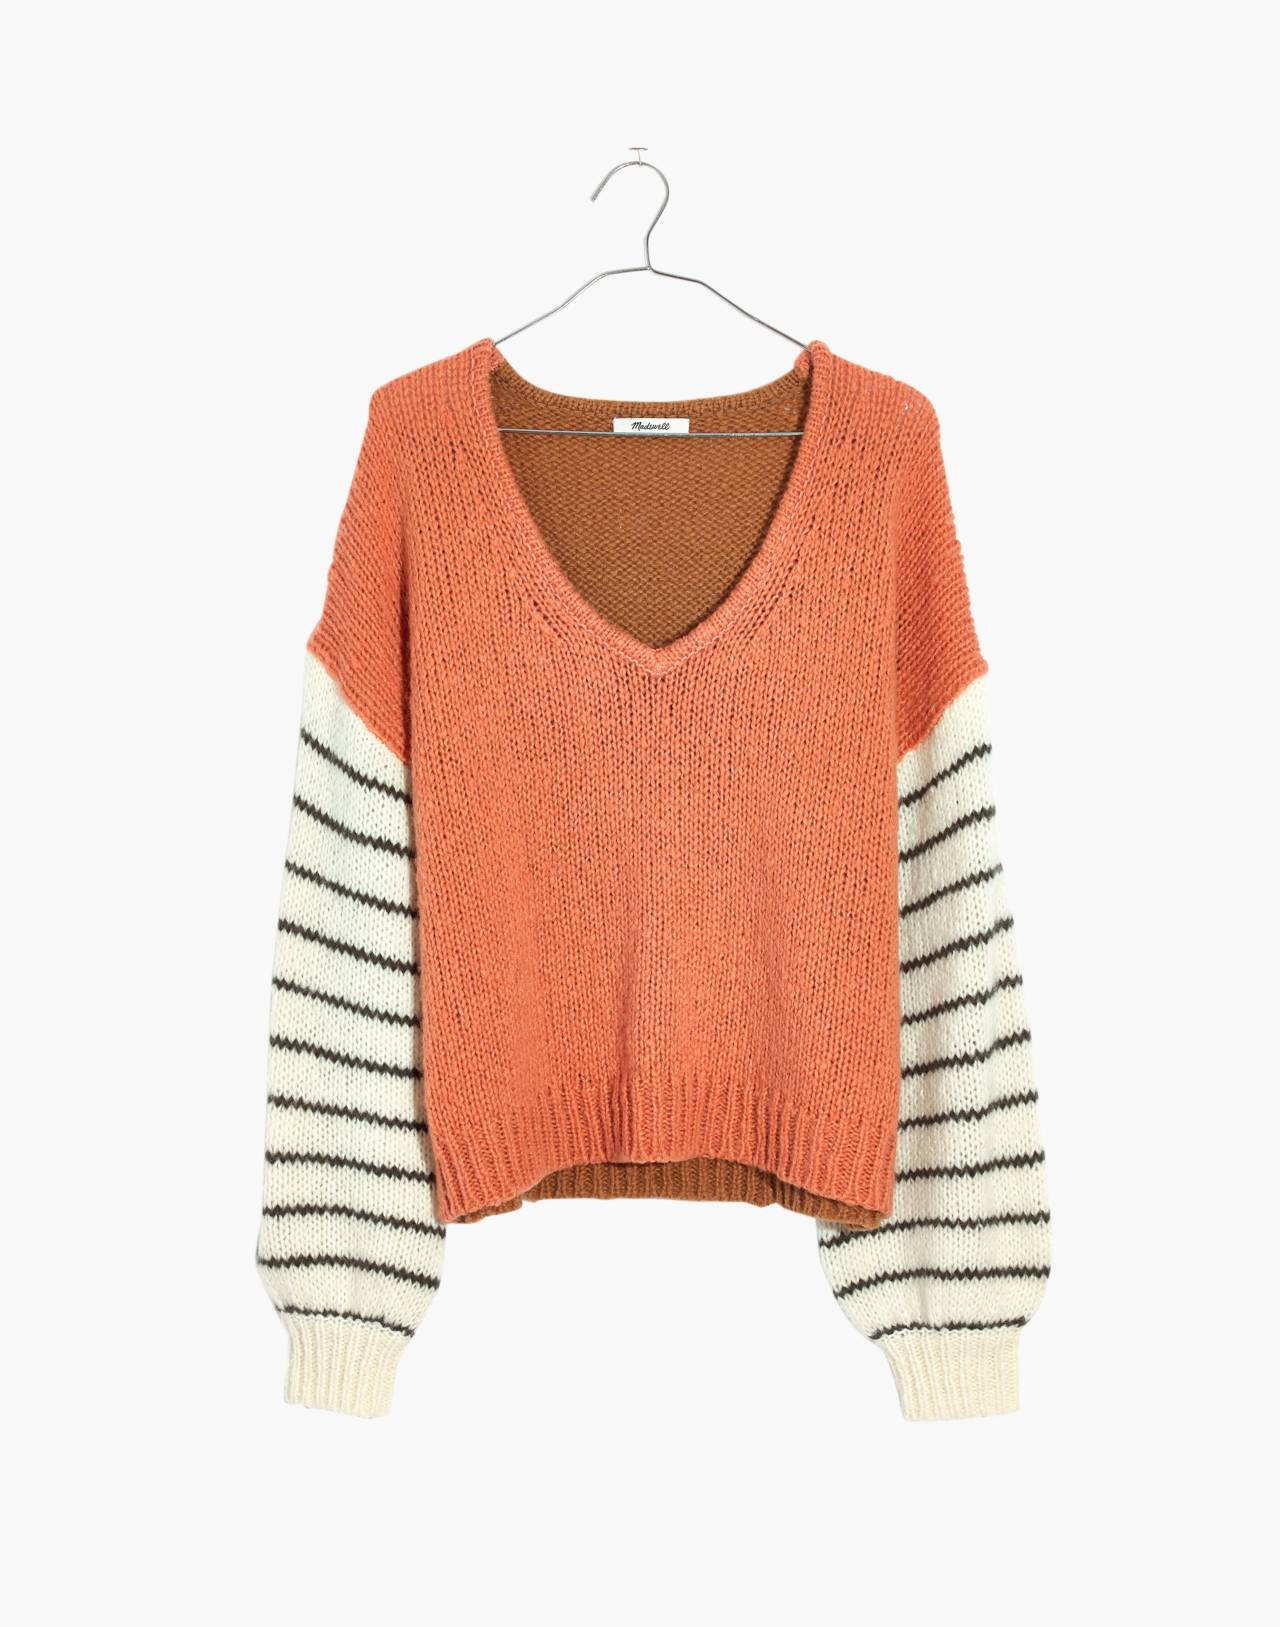 Balloon-Sleeve Pullover Sweater in Colorblock in faded coral image 4